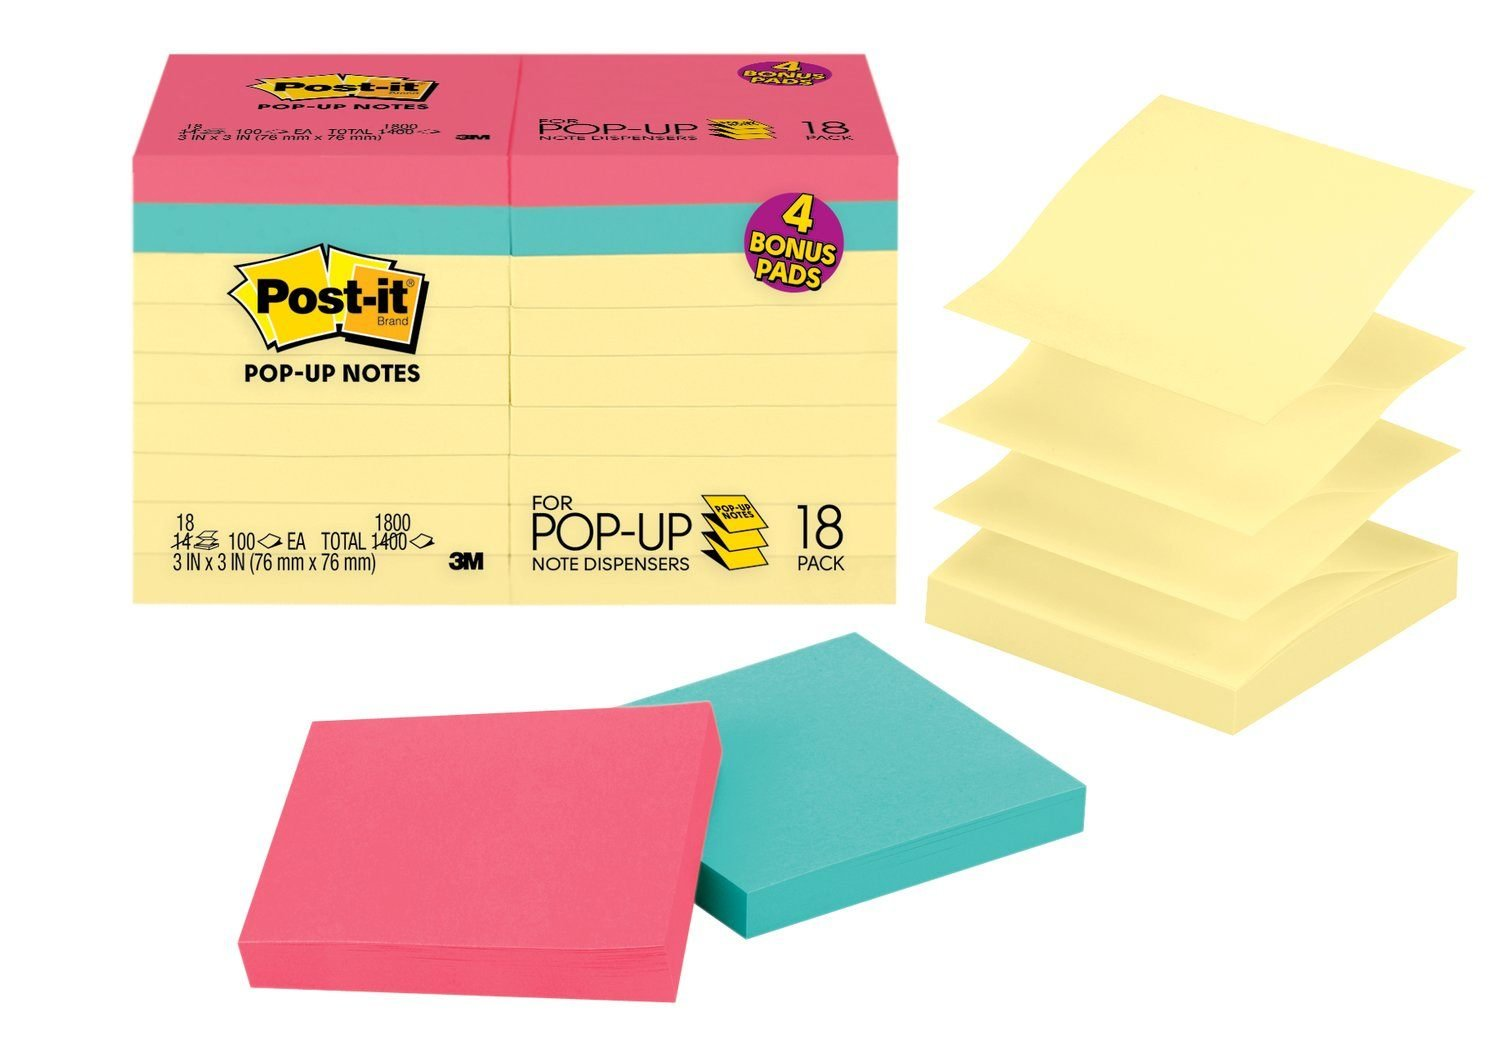 Post-it Pop-up Notes Value Pack, America's #1 Favorite Sticky Note, 3 in x 3 in, Canary Yellow and Cape Town Collection, 14 Pads/Pack Plus 4 Free Cape Town Collection Pads (R330-14-4B)